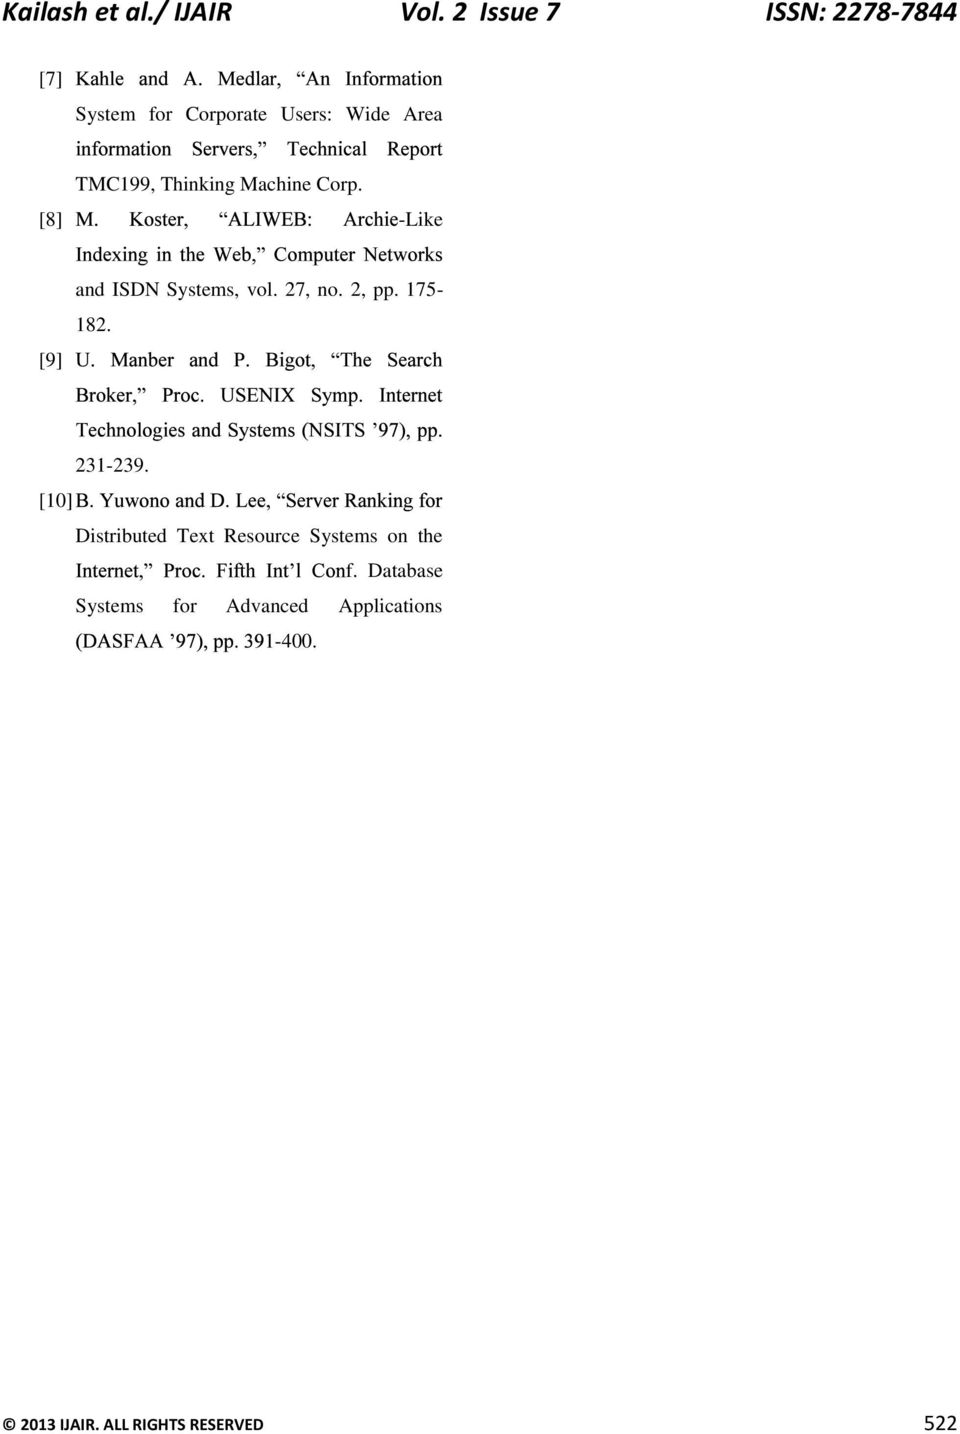 Thinking Machine Corp. [8] -Like [9] and ISDN Systems, vol. 27, no. 2, pp. 175-182.